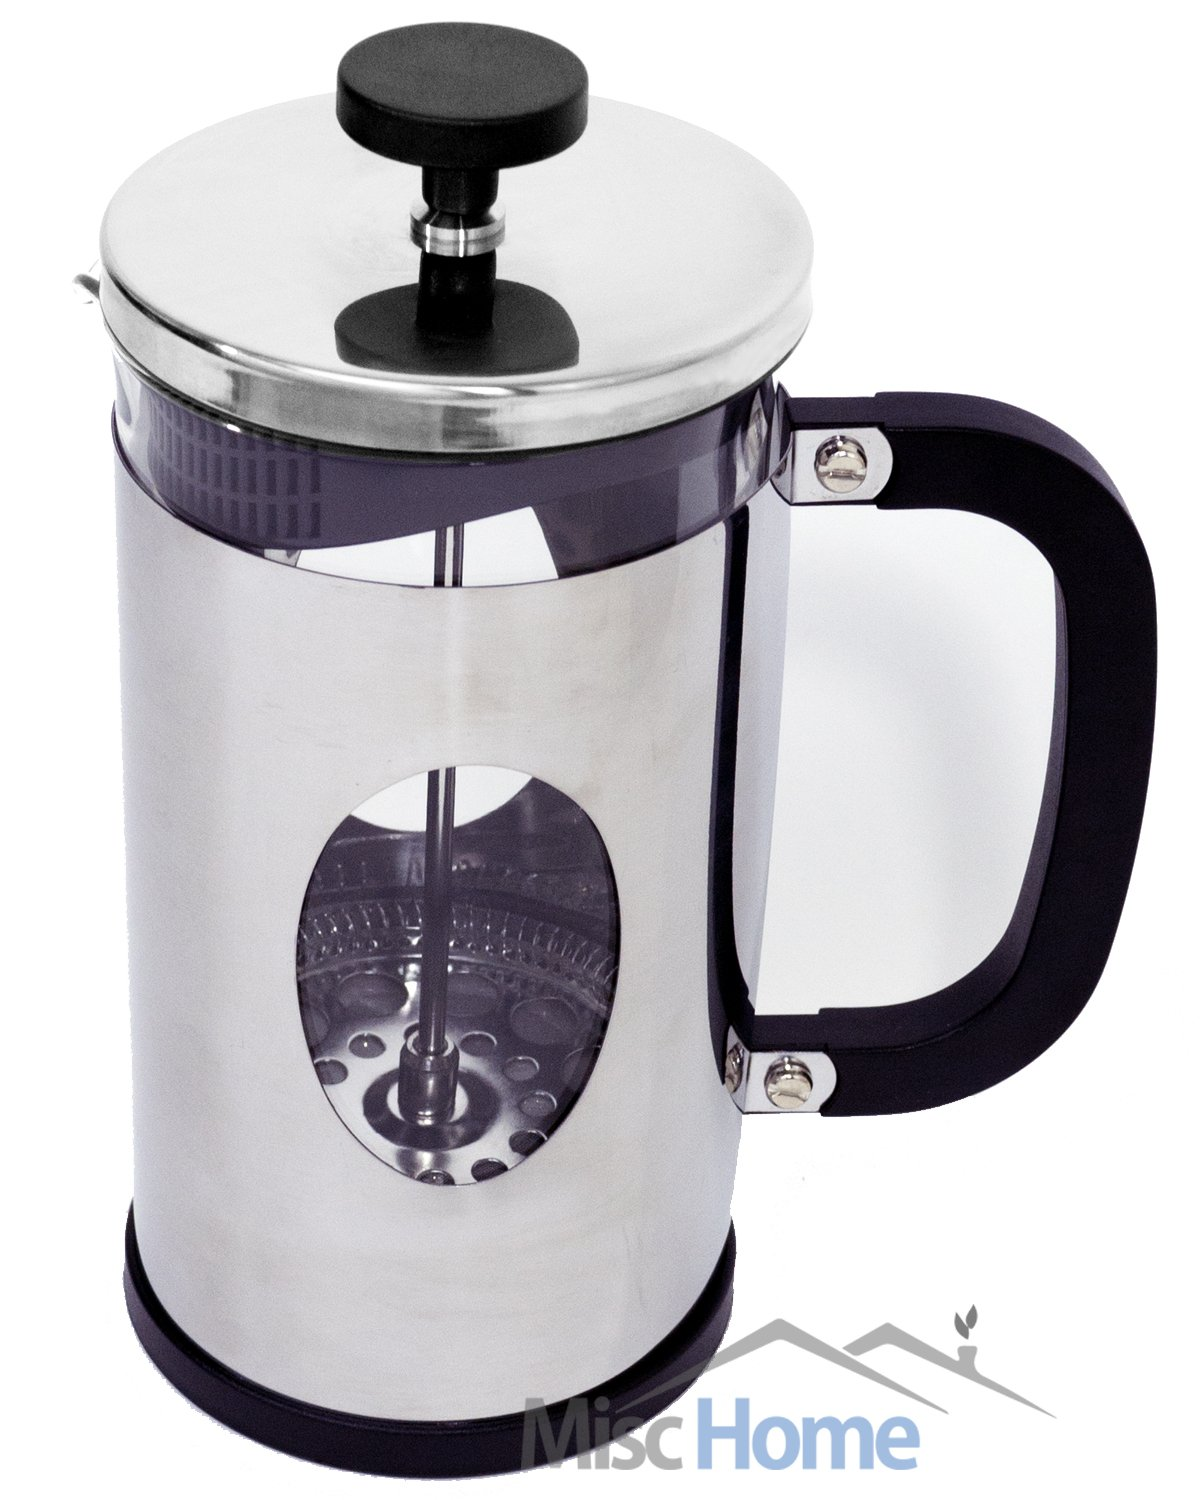 Gourmet Stainless Steel French Press Coffee Maker Tea Maker